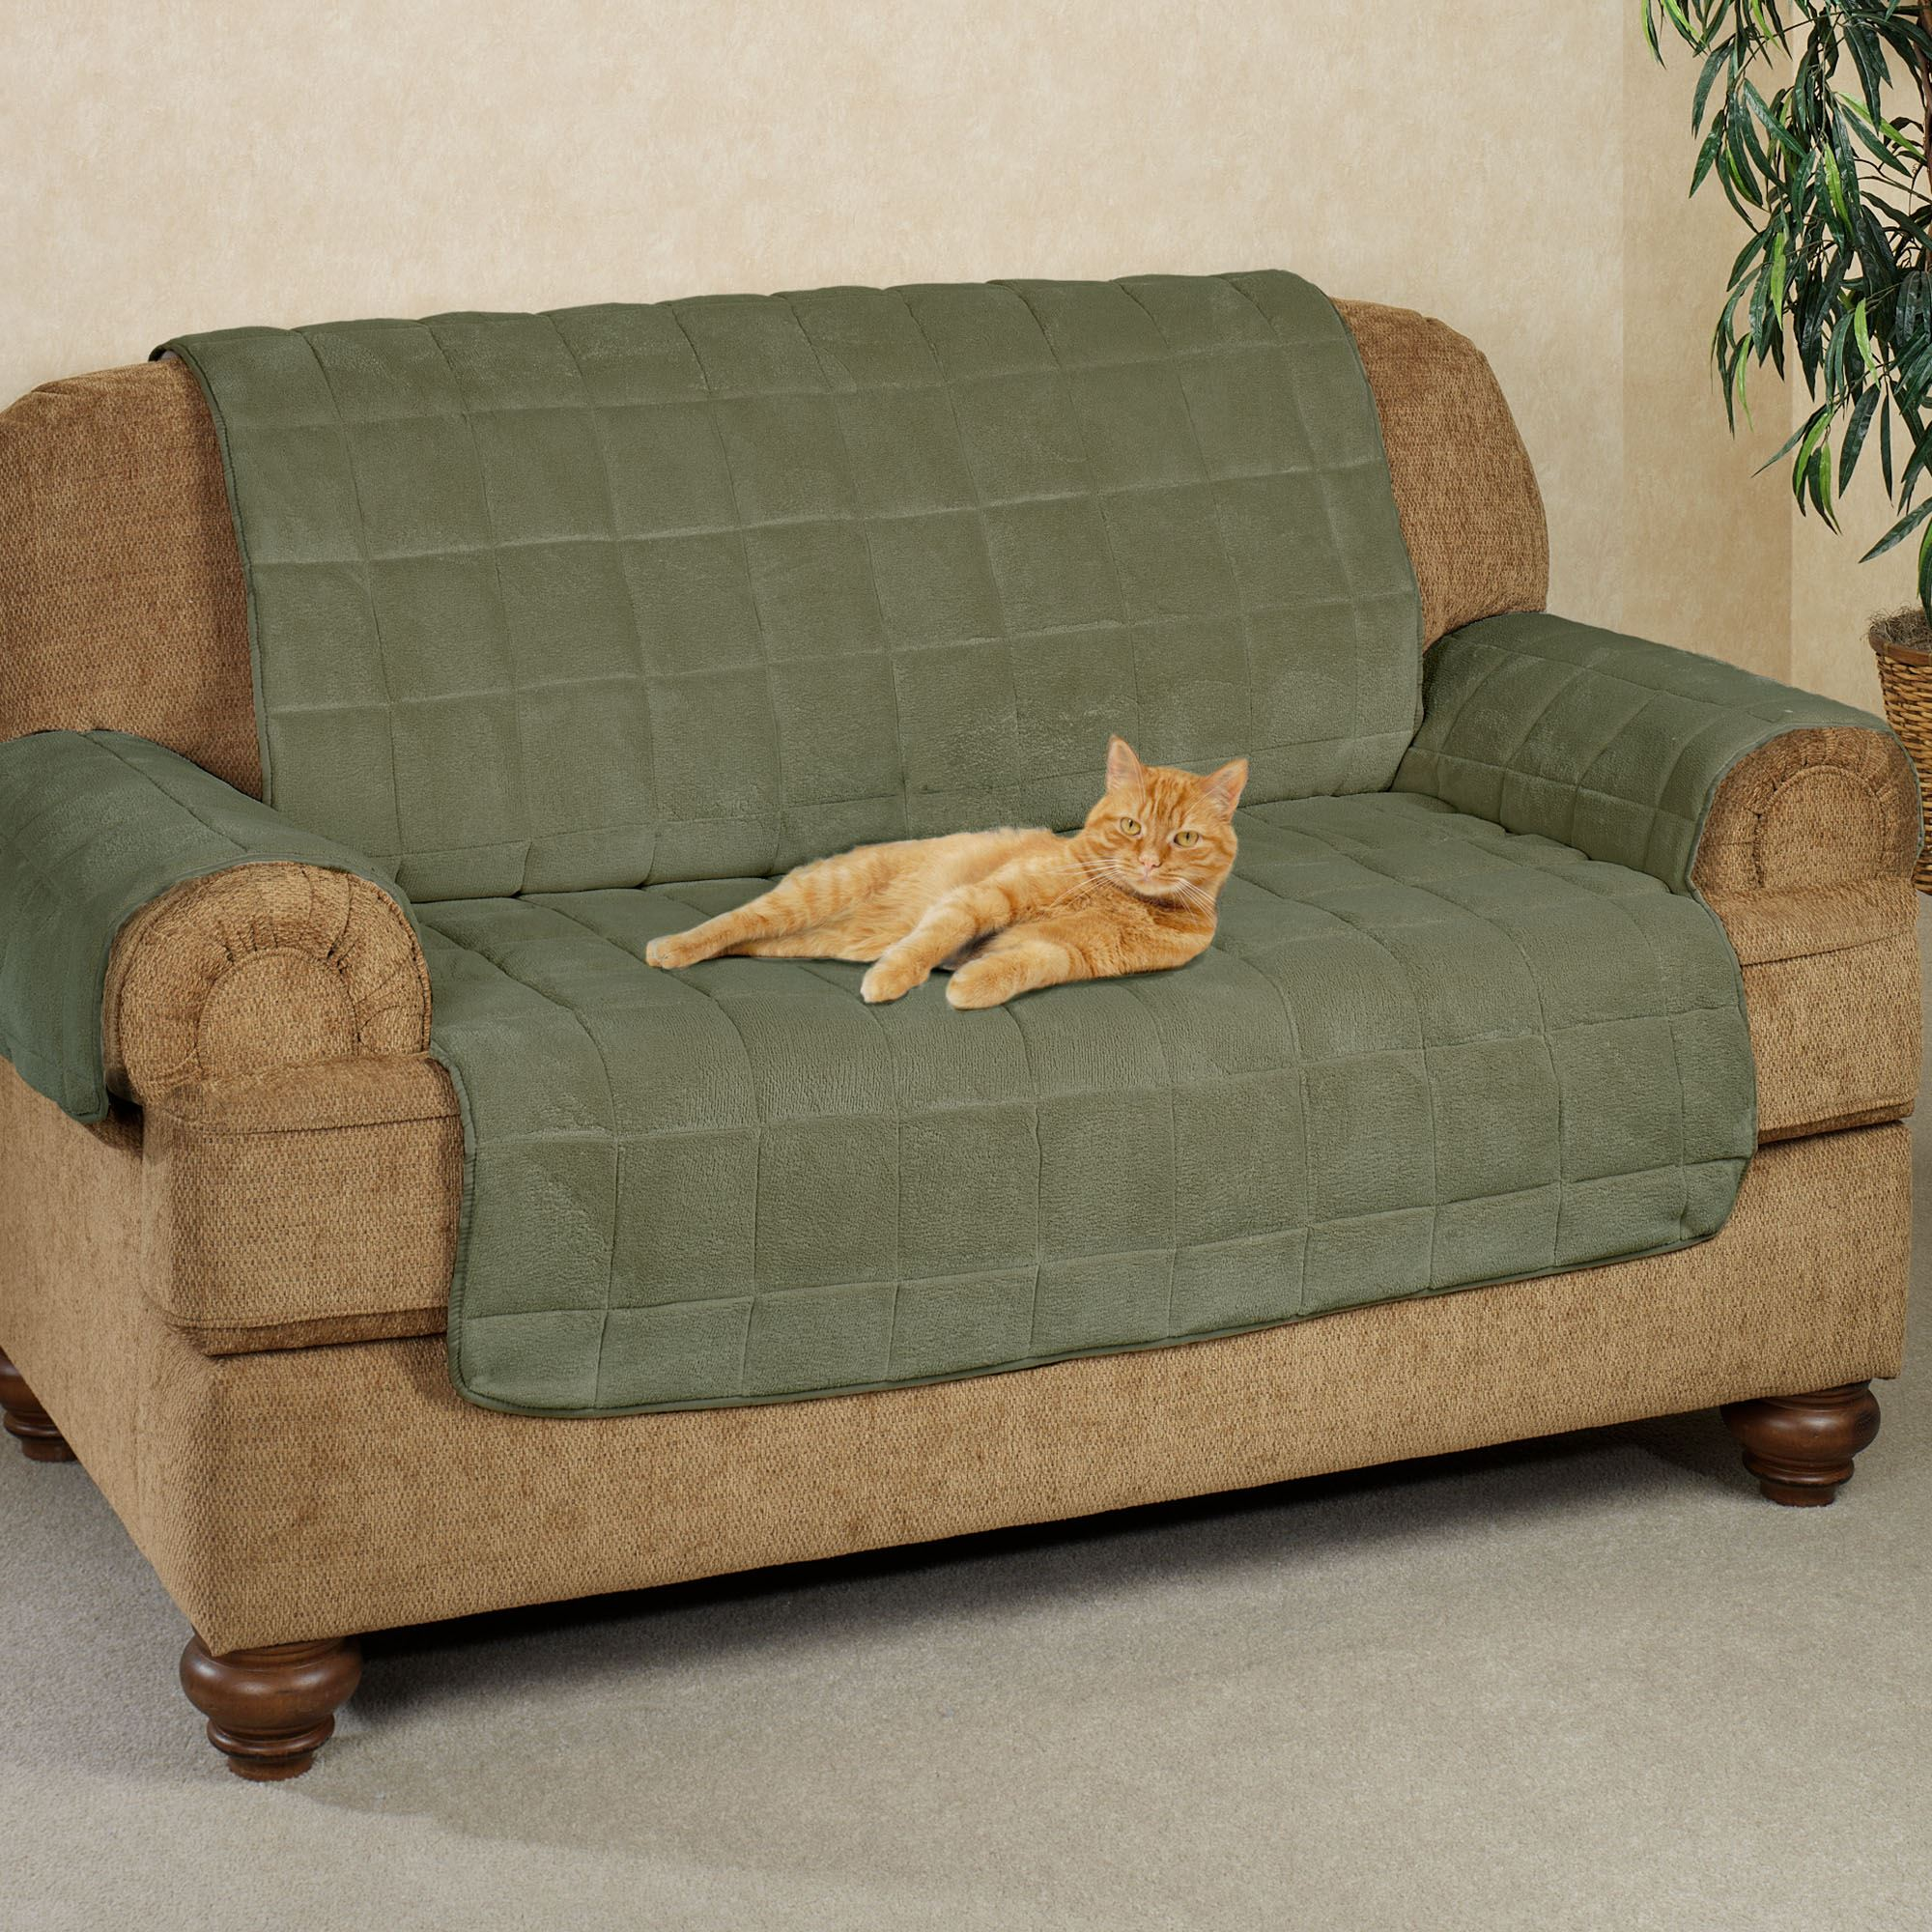 Picture of: Microplush Pet Furniture Covers With Longer Back Flap